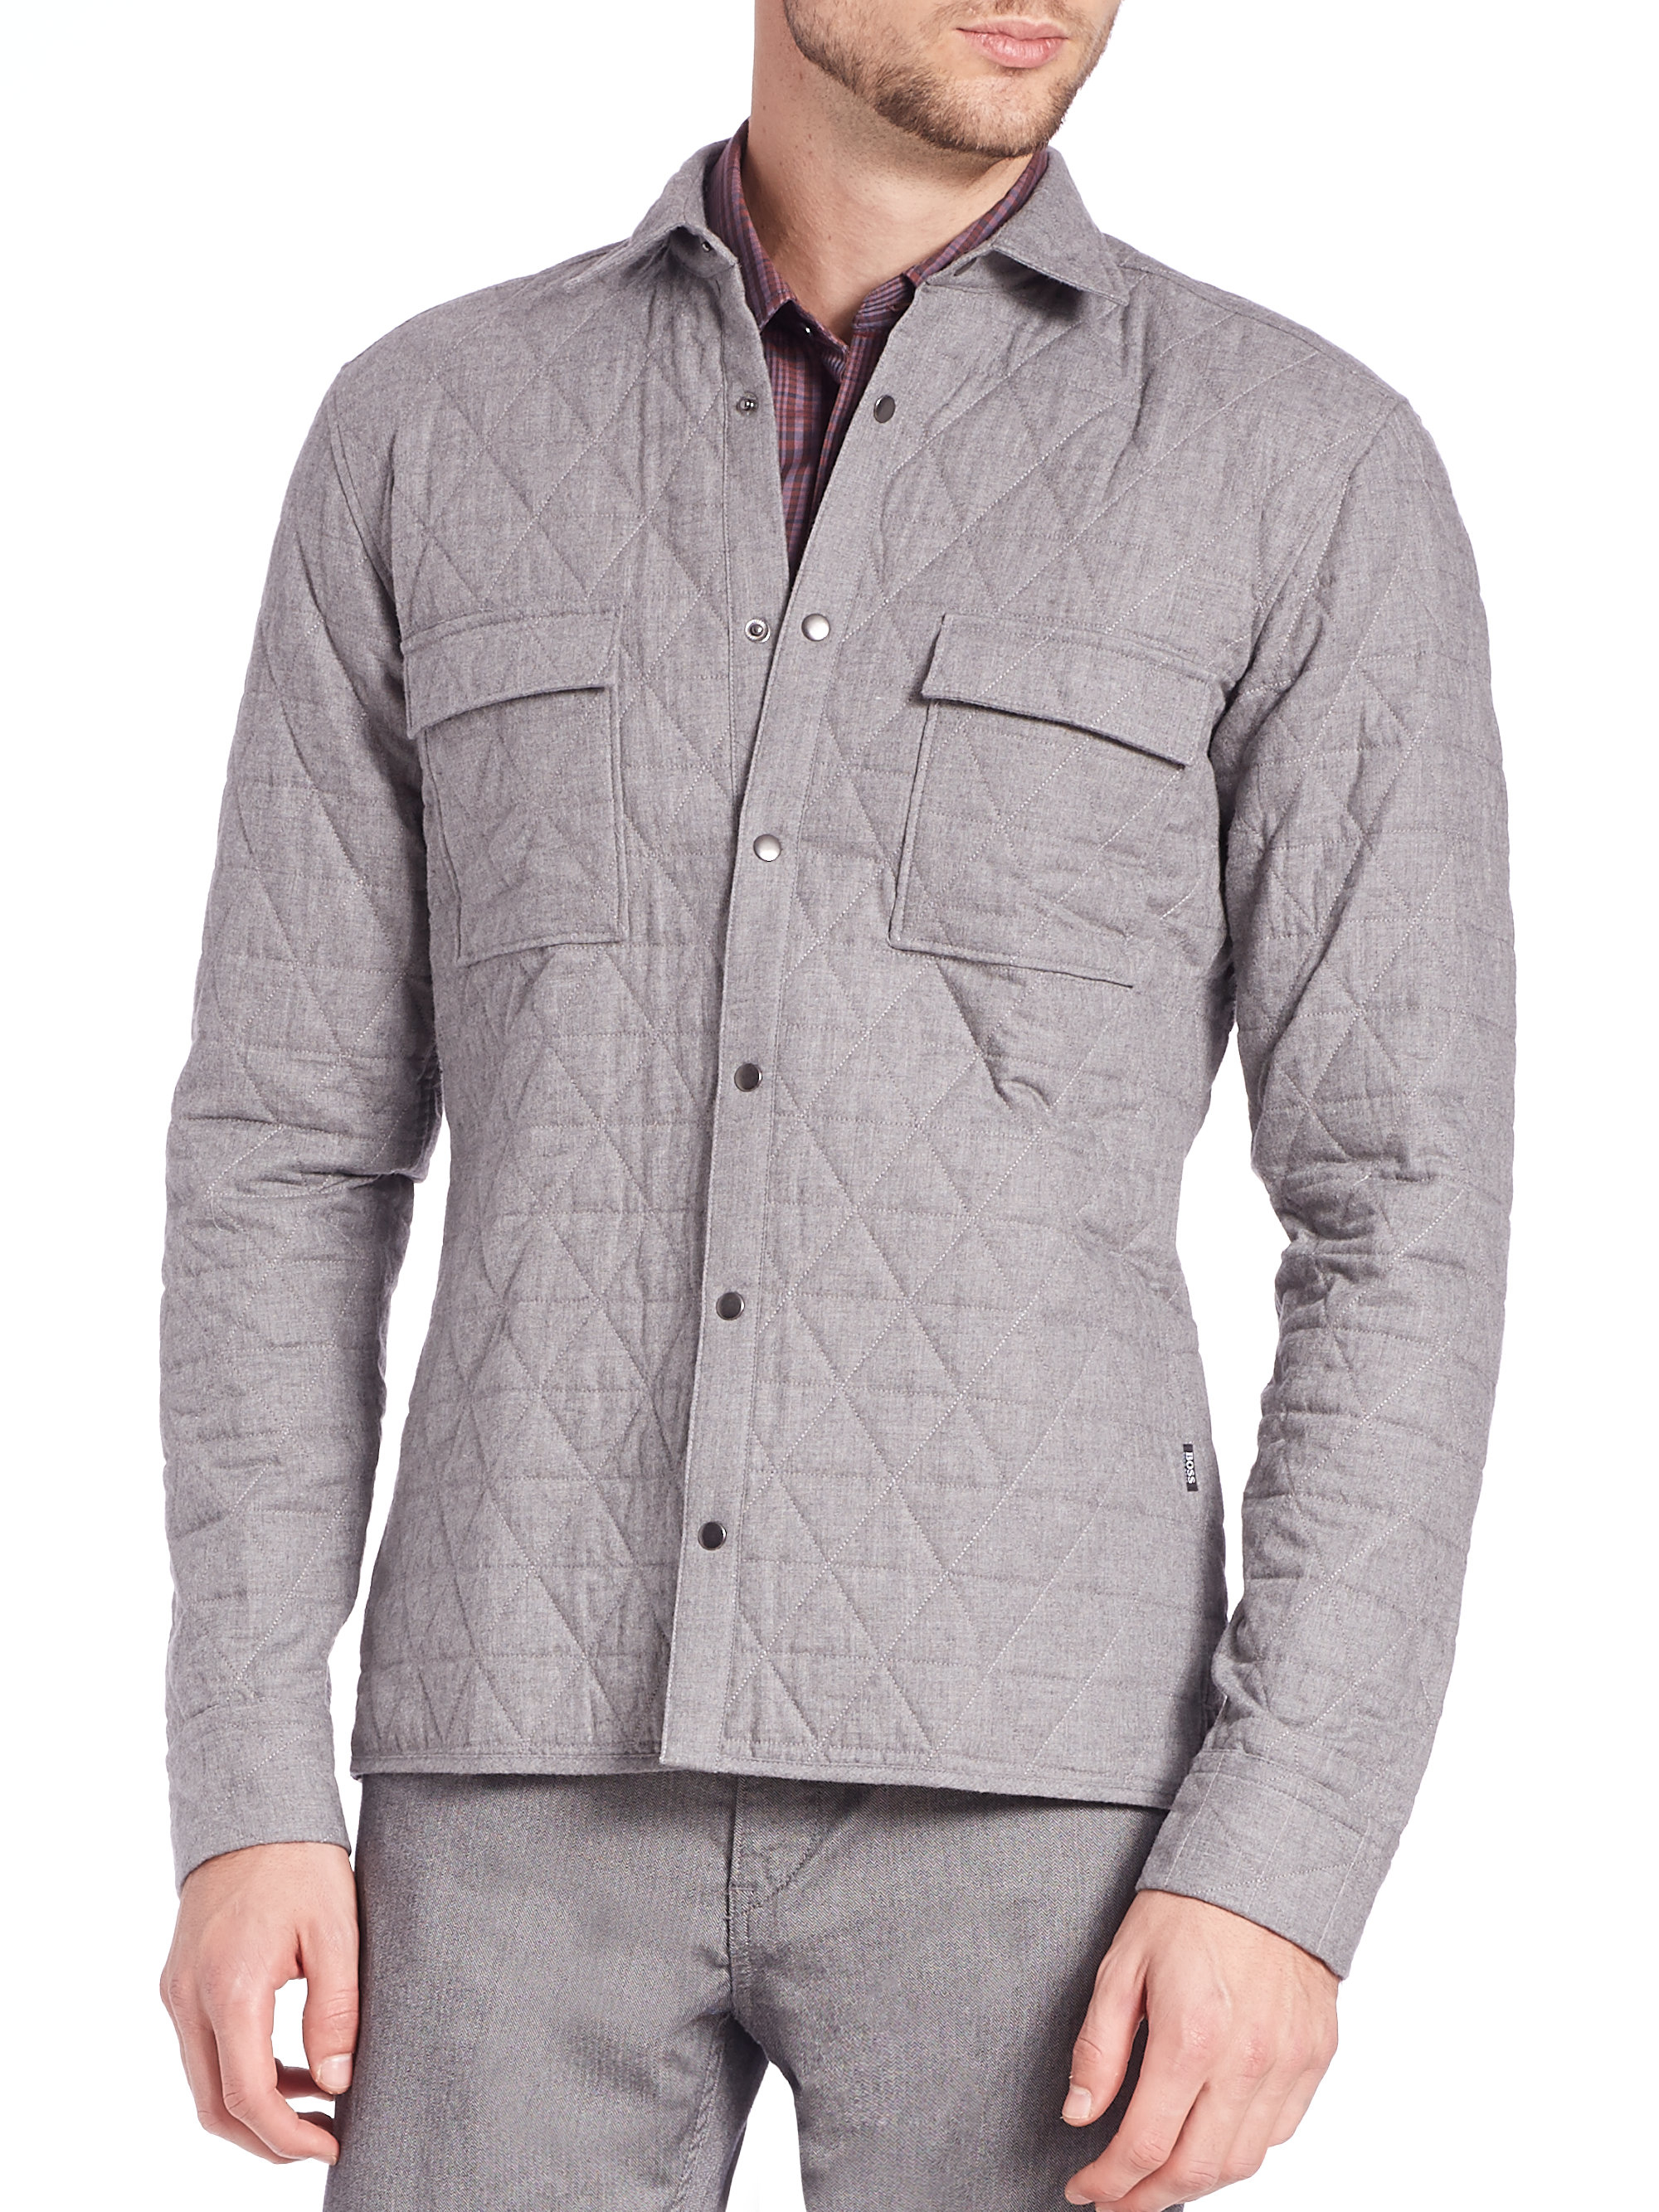 6f180a4749879 Lyst Saks Fifth Avenue Rian Quilted Jacket In Gray For Men shoes for cheap  13139 f7260  Ted Baker ...